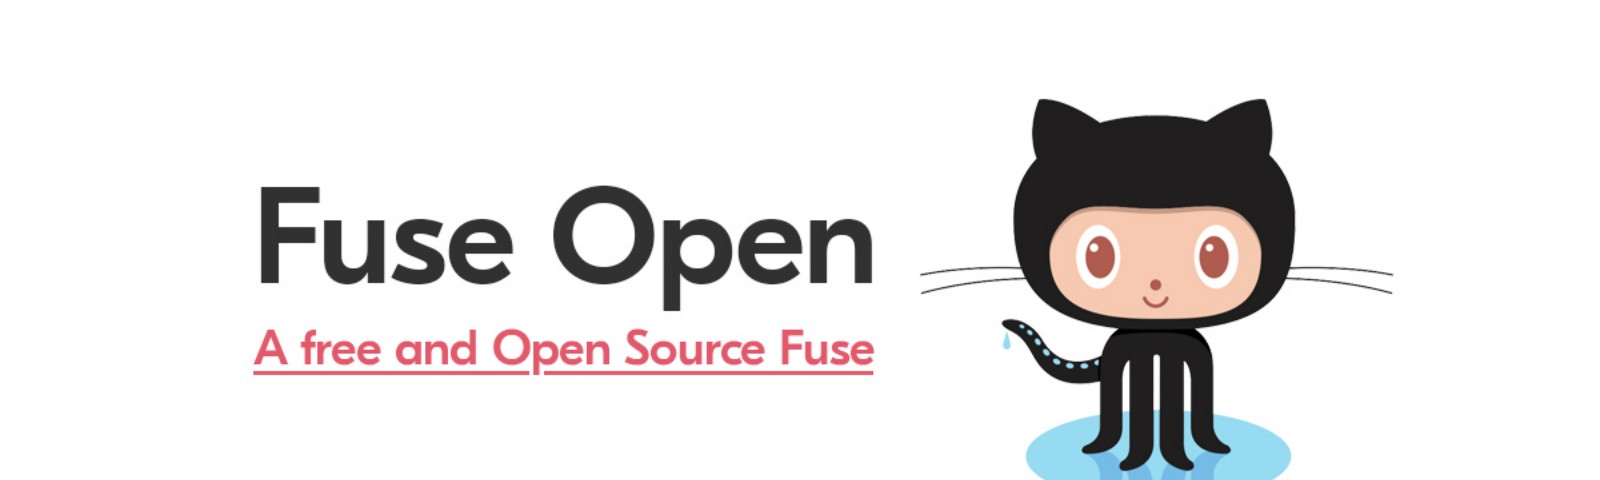 Announcing Fuse Open — making Fuse free and Open Source